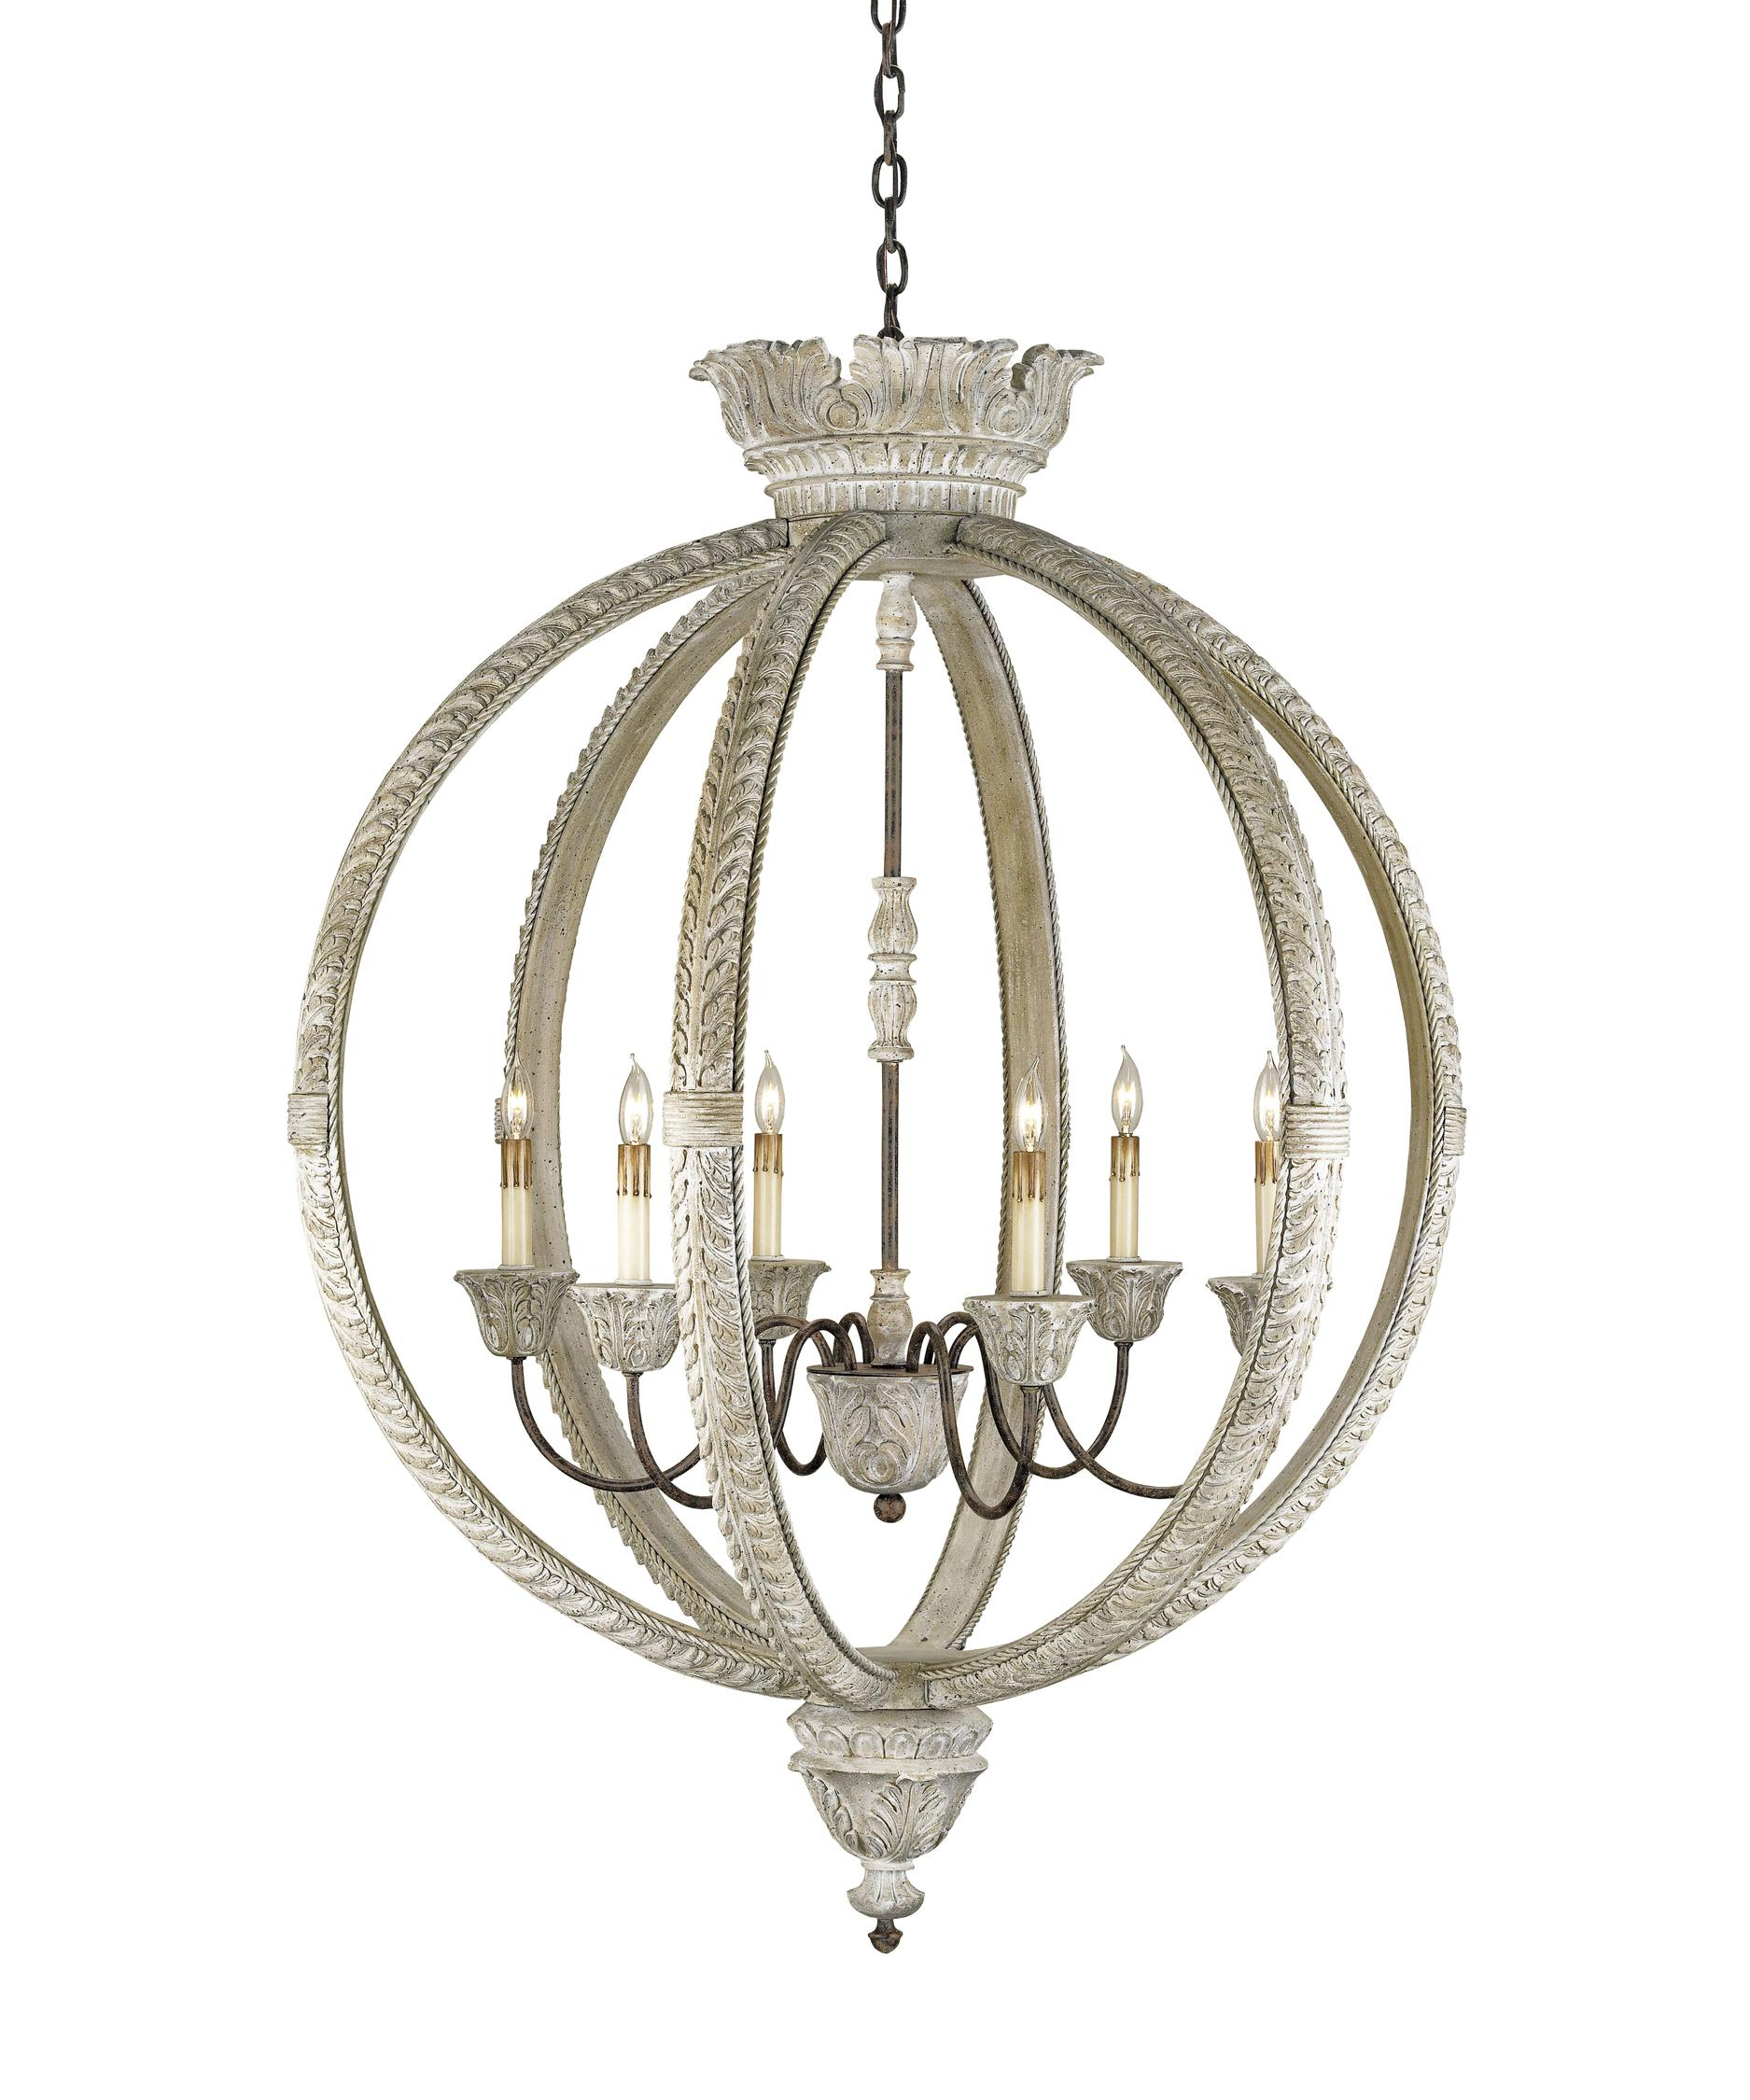 Currey and Company Dauphin 37 Inch Wide 6 Light Chandelier – Currey and Company Lighting Chandeliers